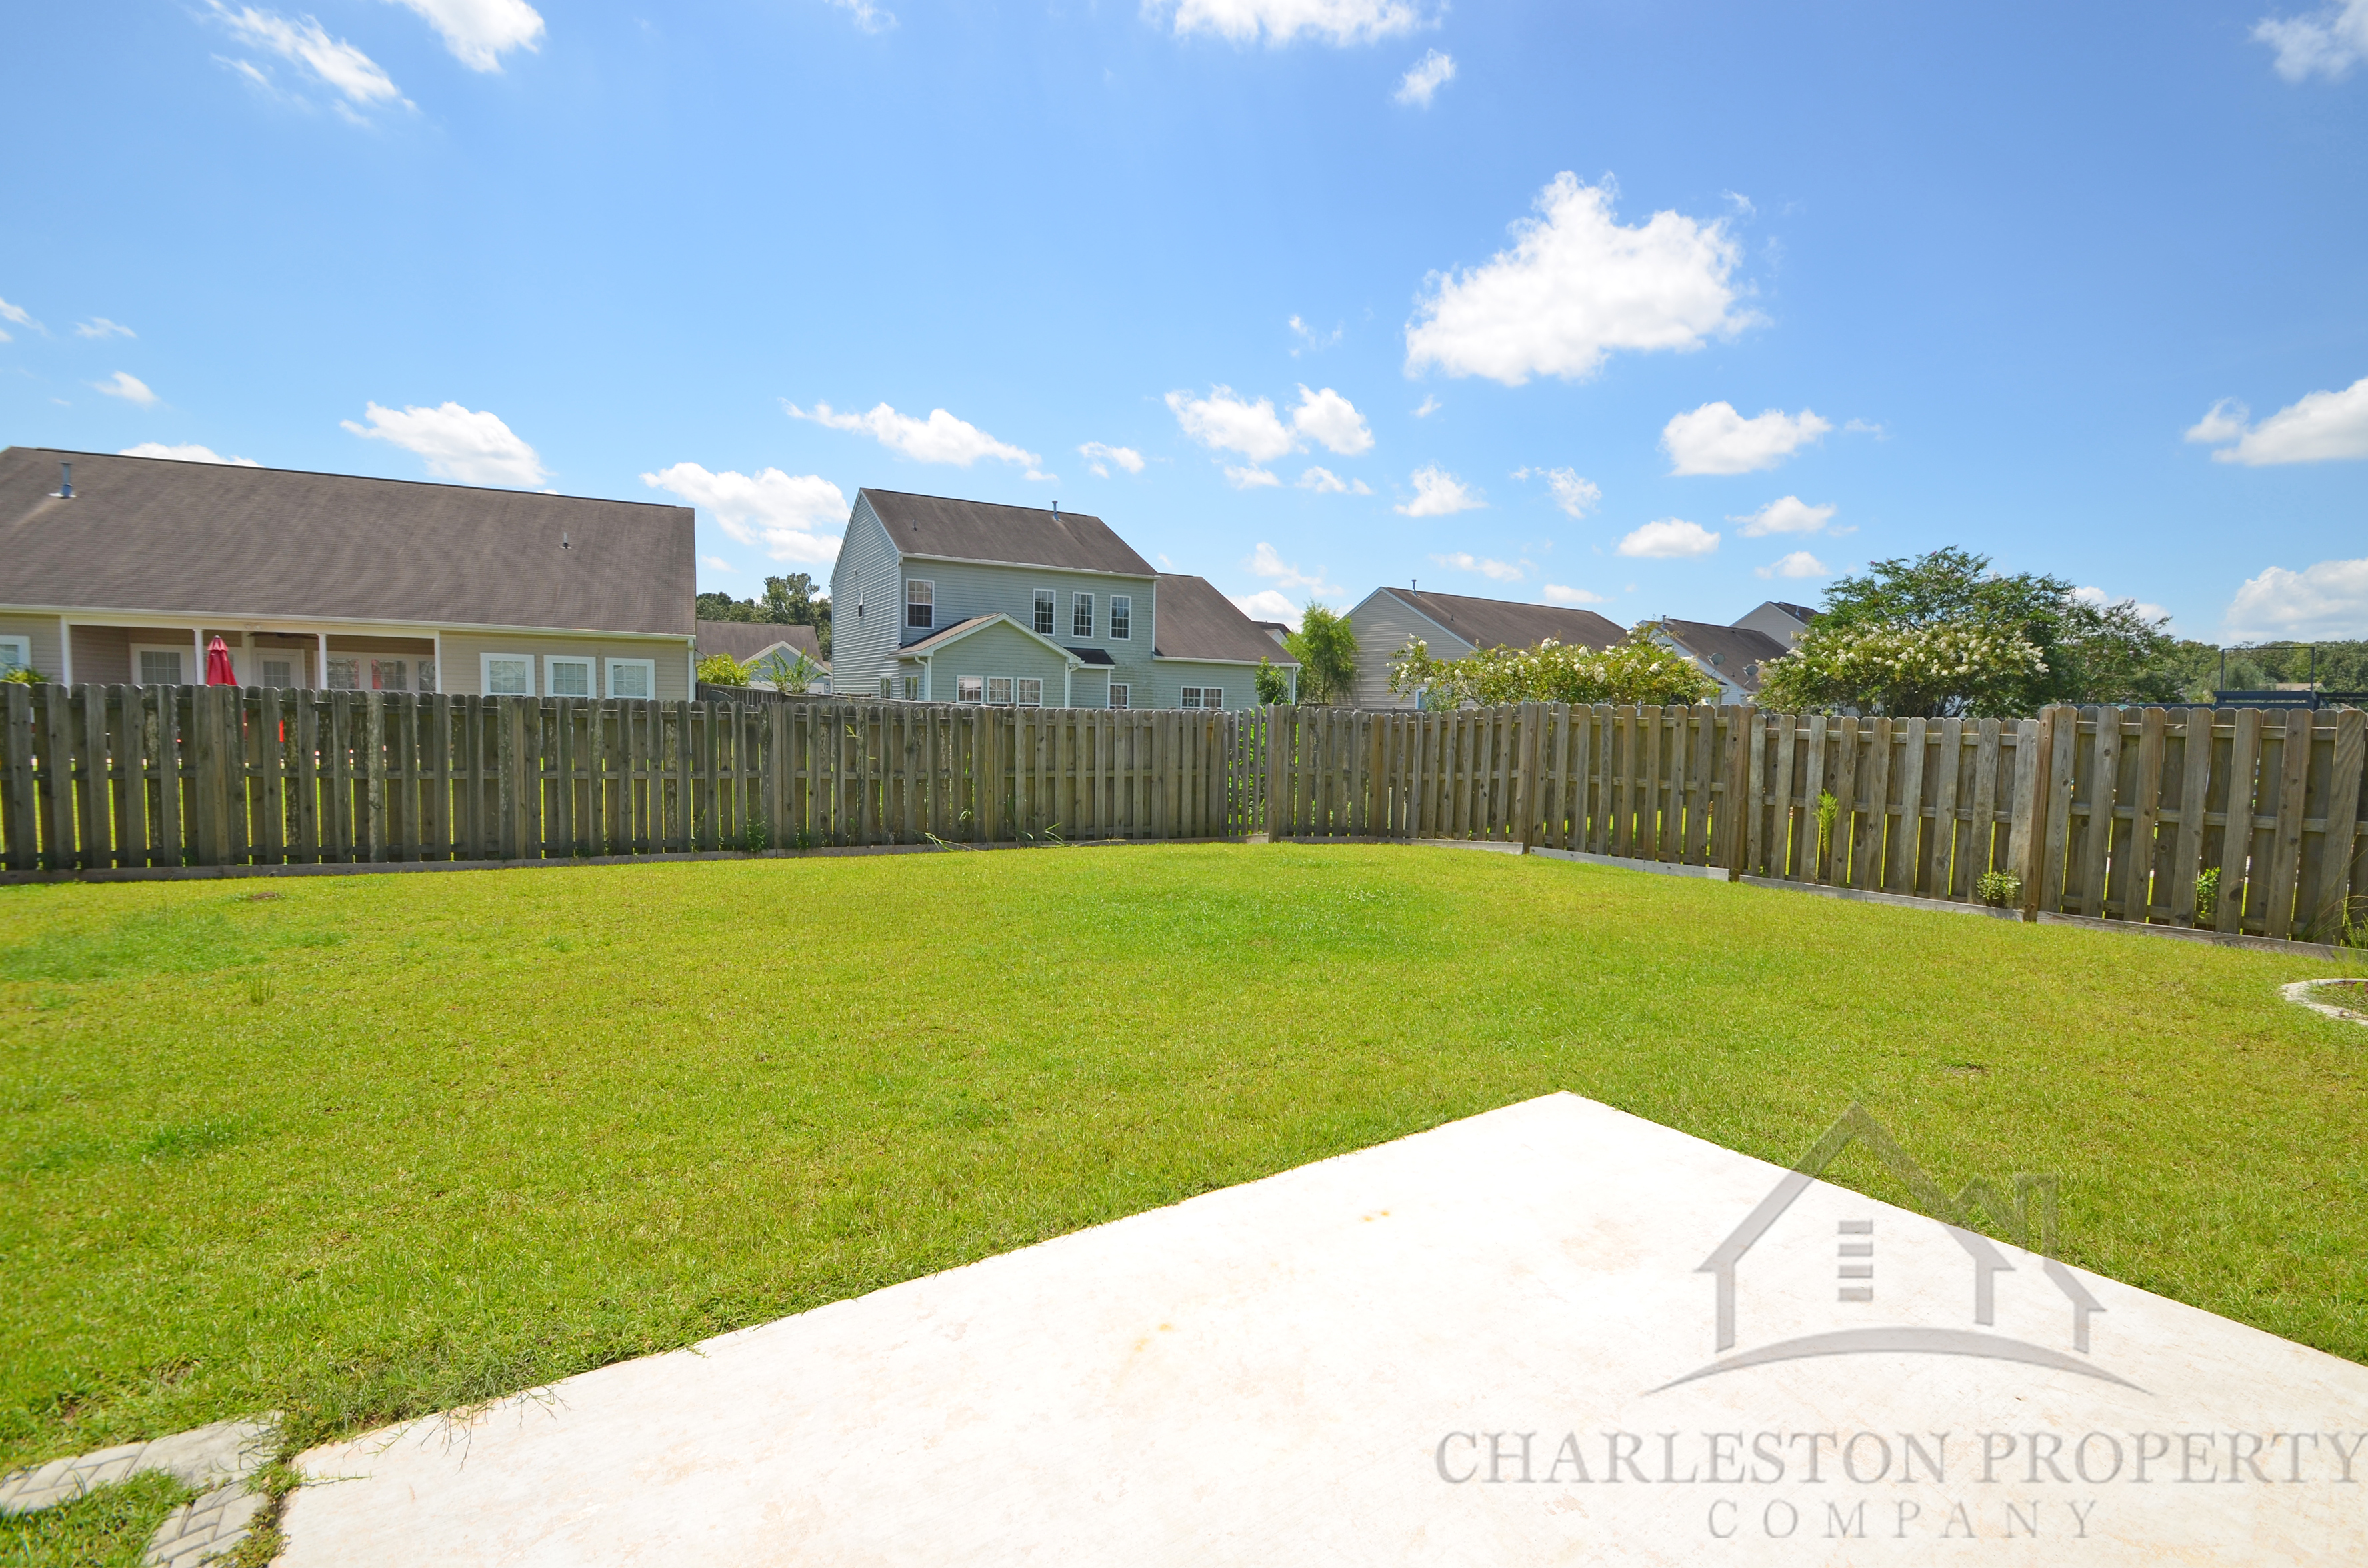 273 Mayfield Dr Goose Creek SC 29445-7320 - Photo 14